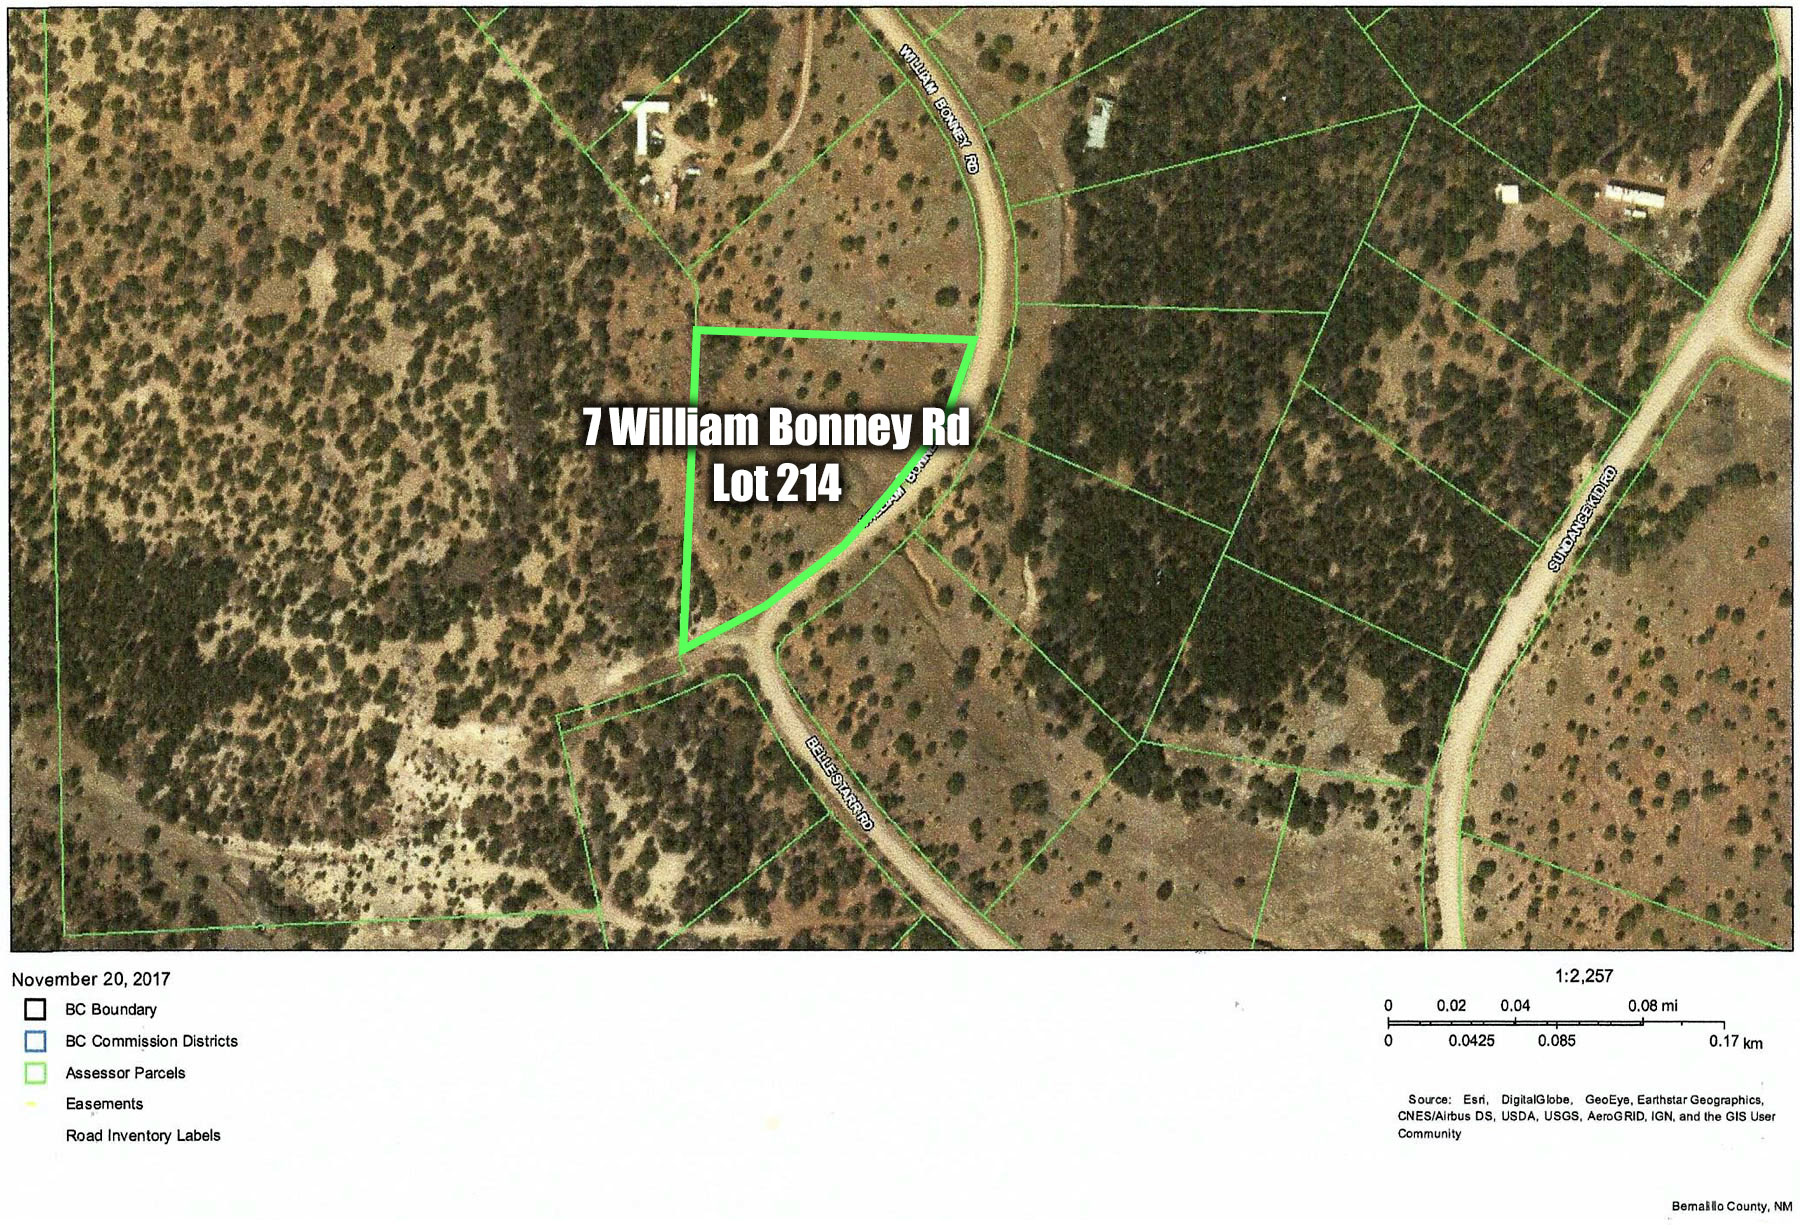 7 William Bonney Rd - Sundance Mountain Ranches